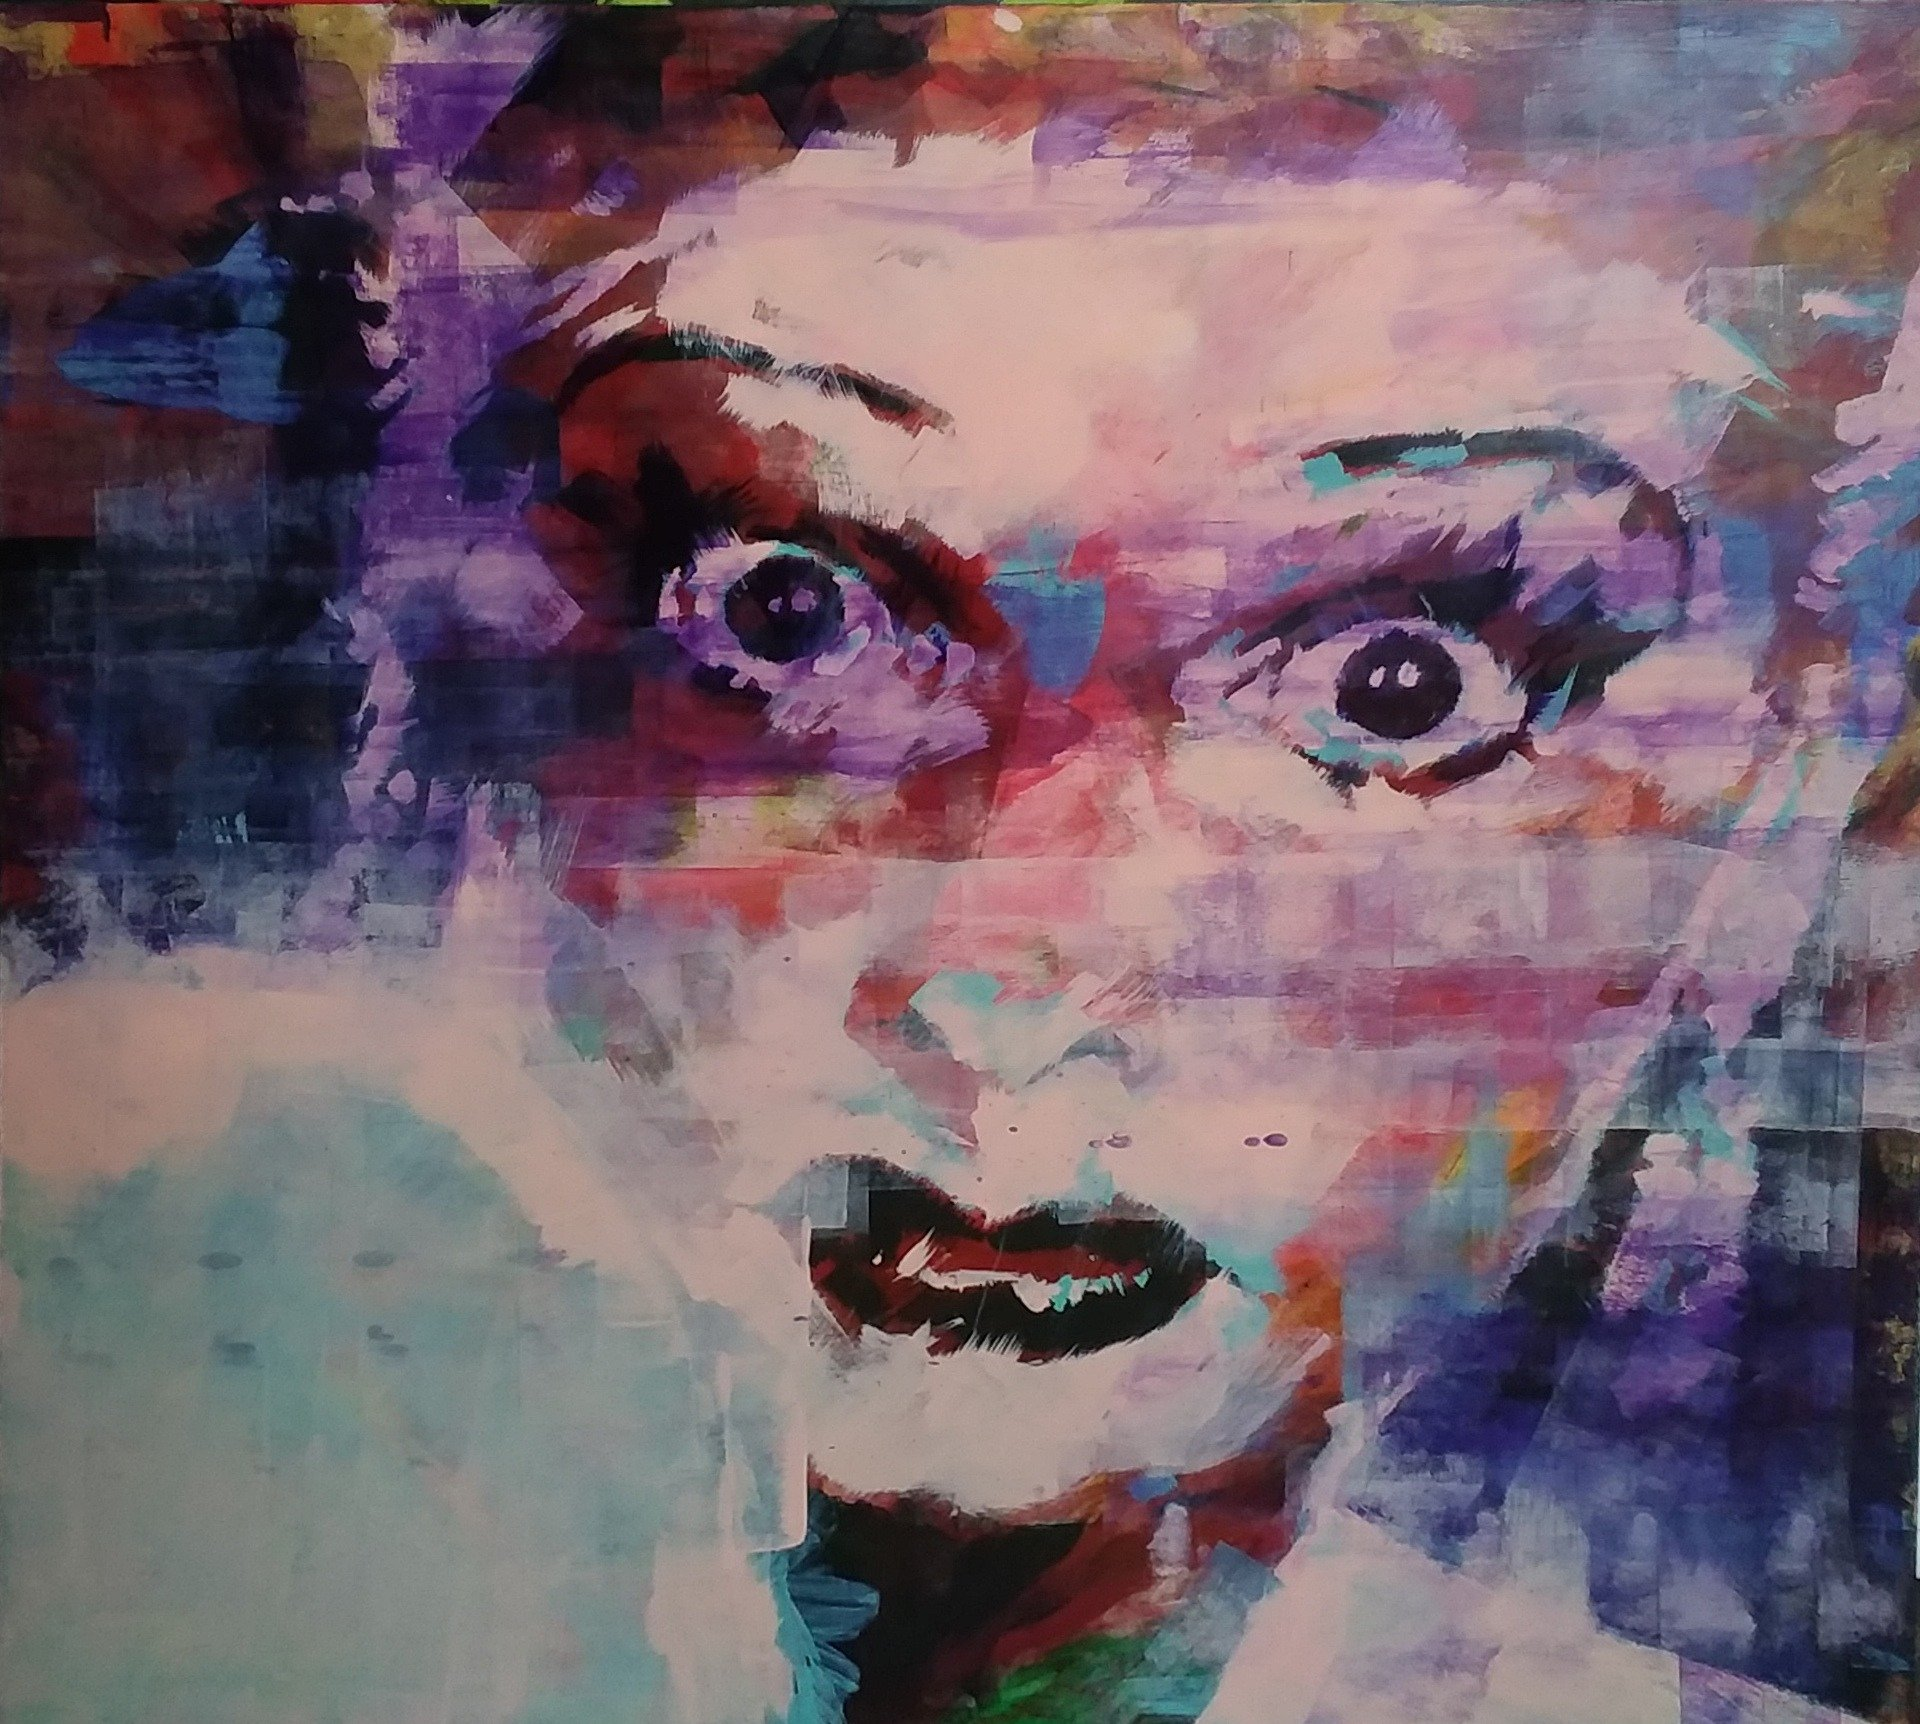 Lucille Ball by Henryk Ptasiewicz Acrylic on Cradled Panel 48x48